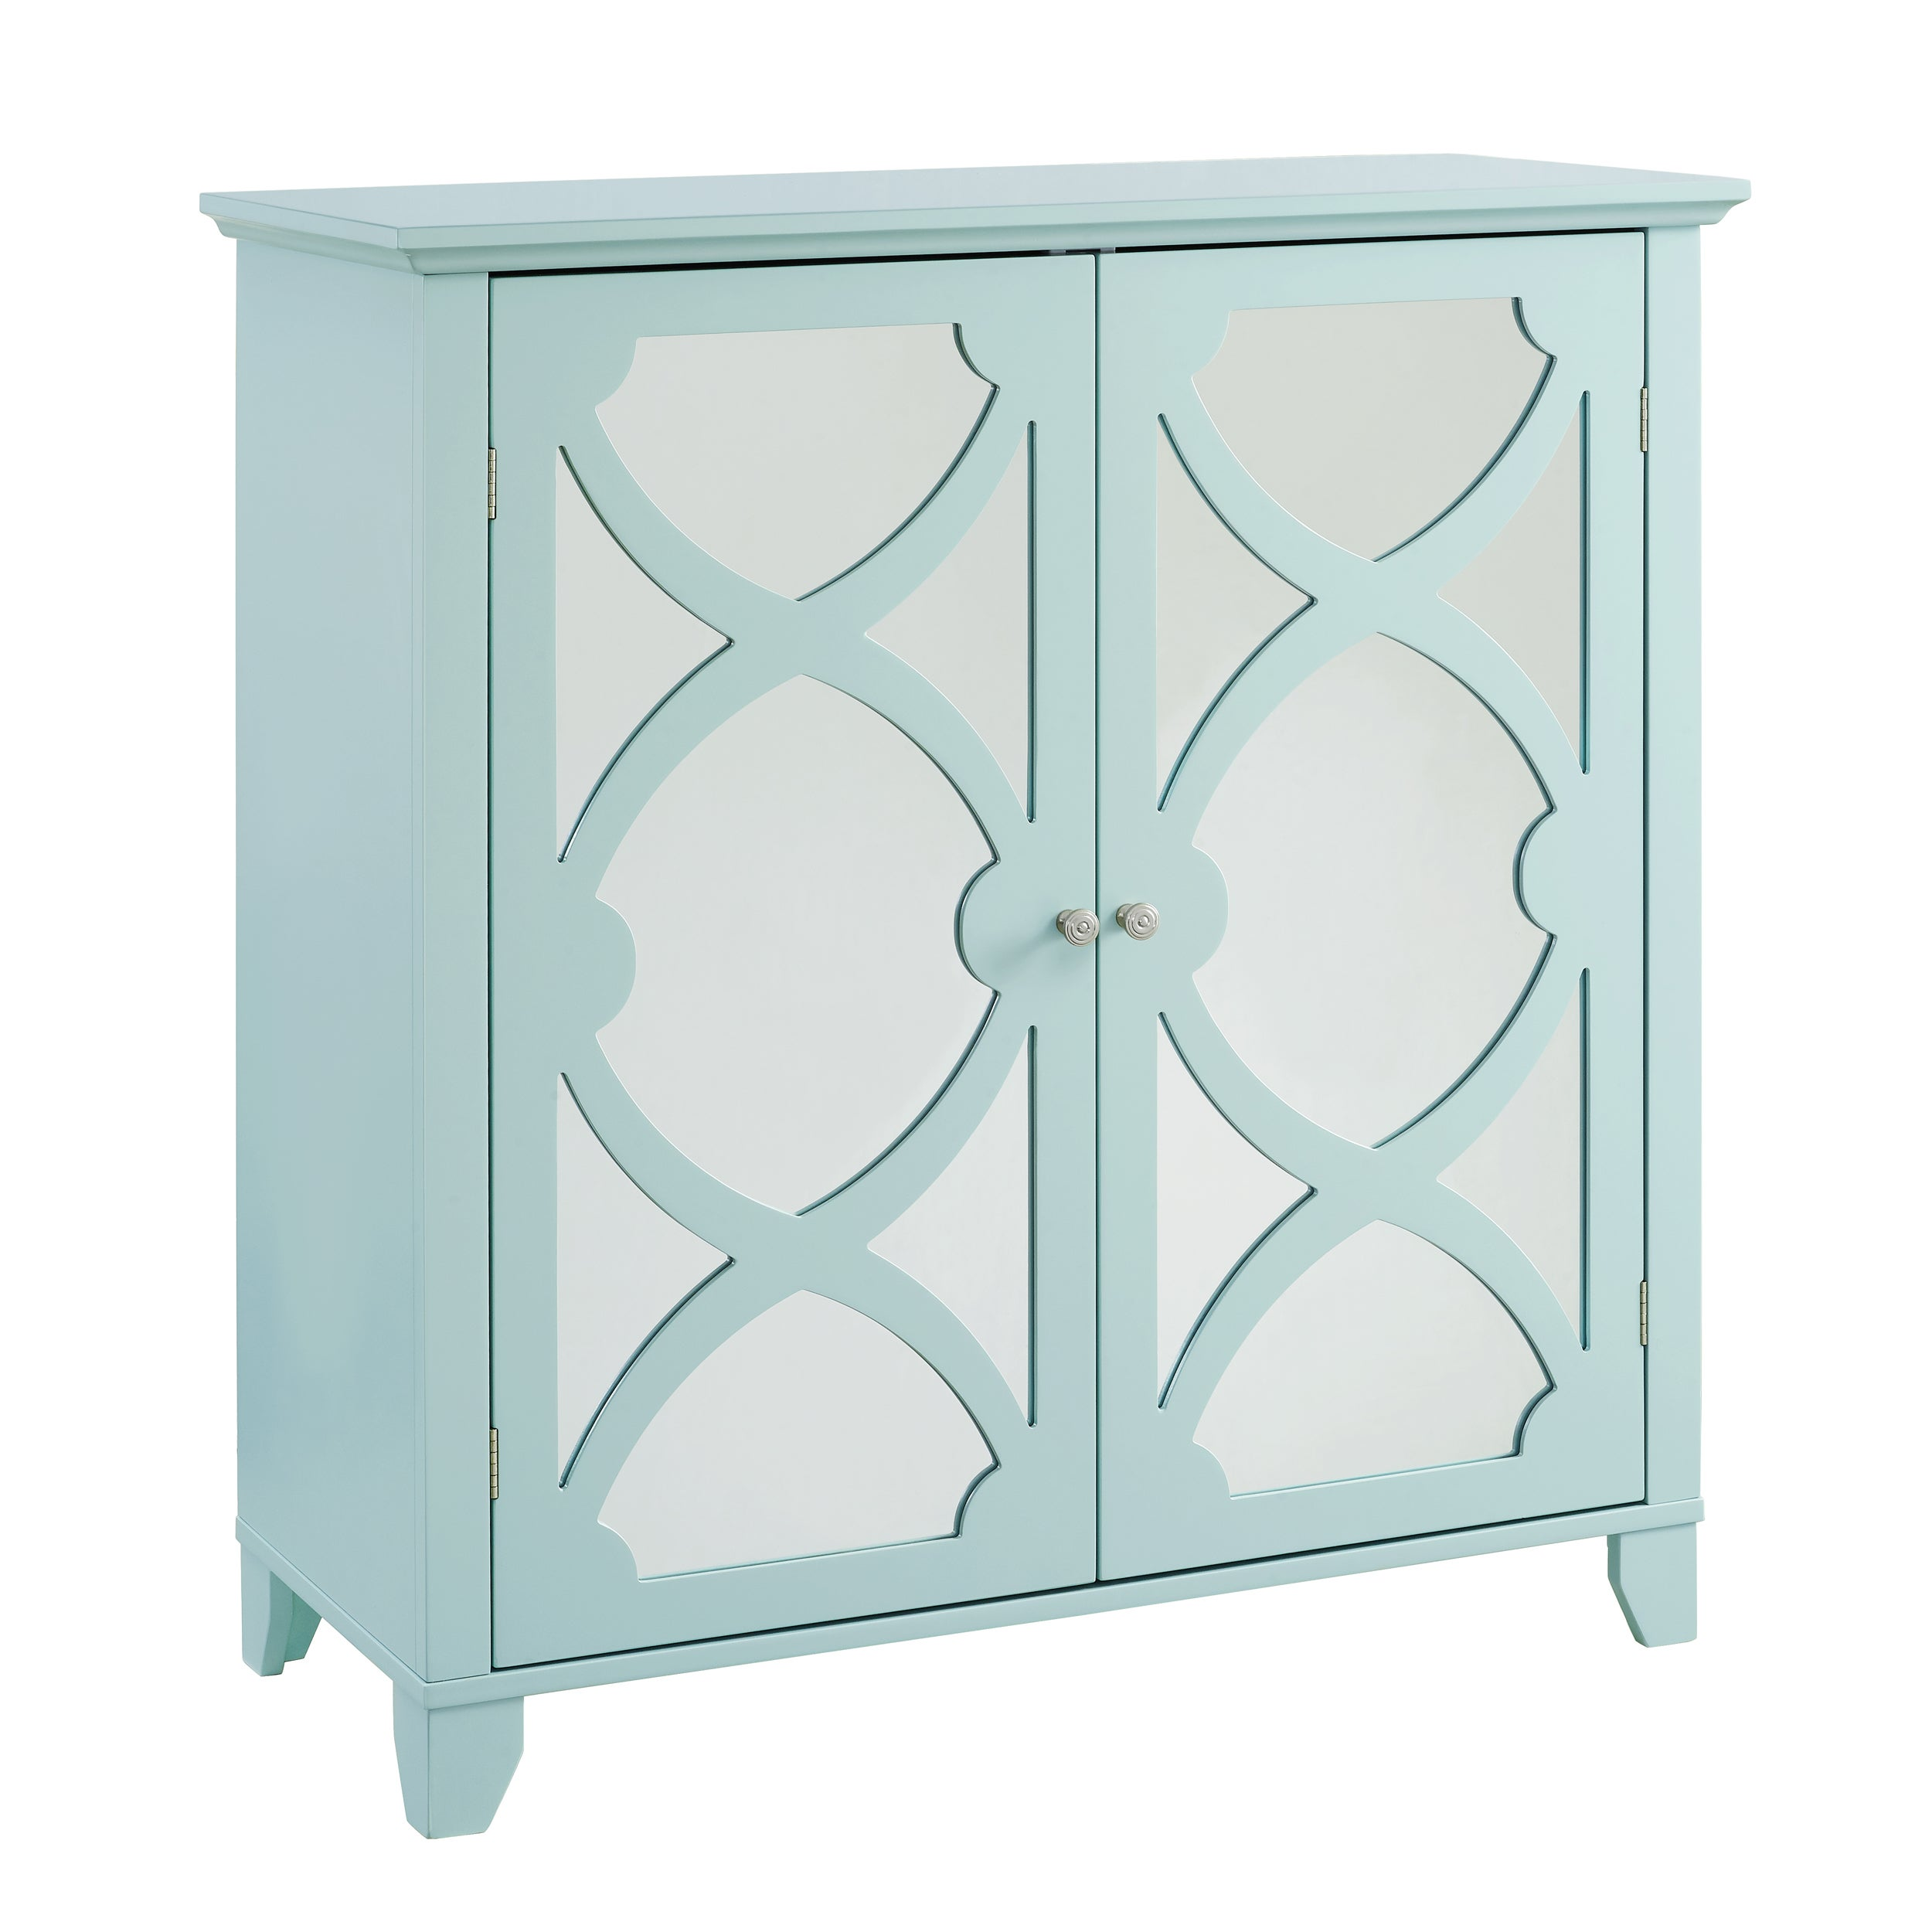 Shop Winnie Seafoam Large Cabinet with Mirrored Door - Free Shipping ...